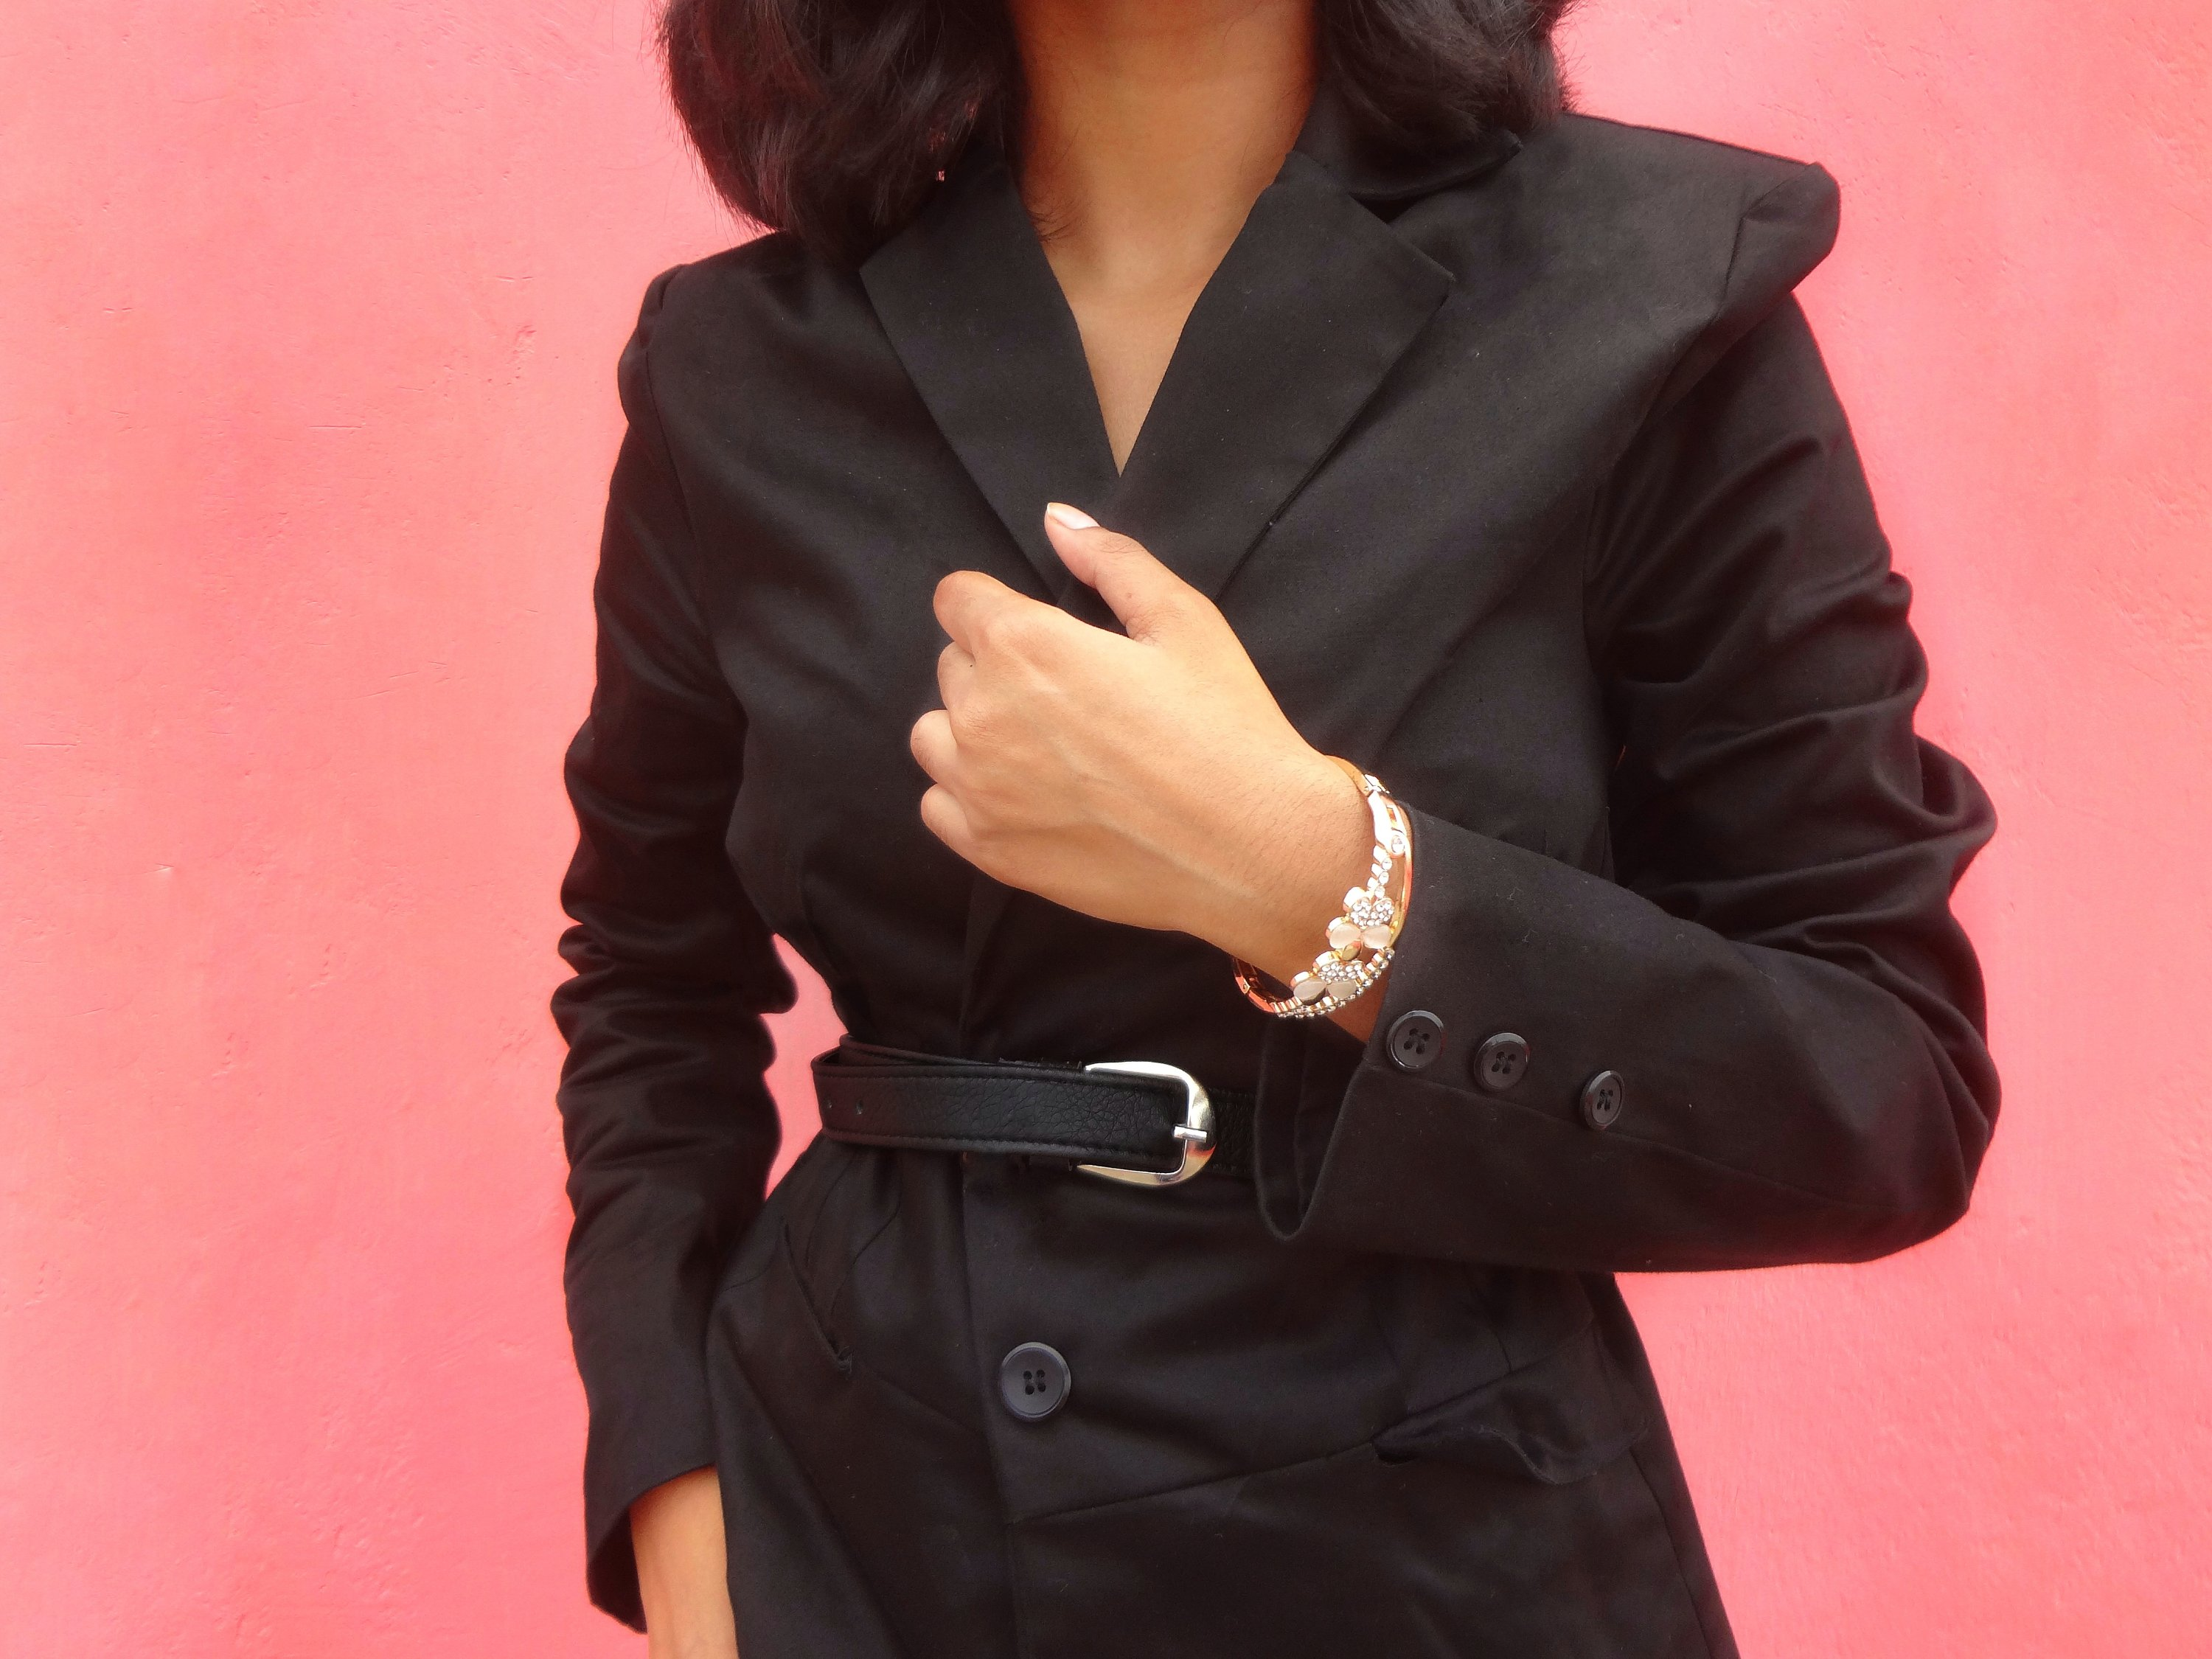 Belted blazer accessorized with a gold bracelet; outfit details